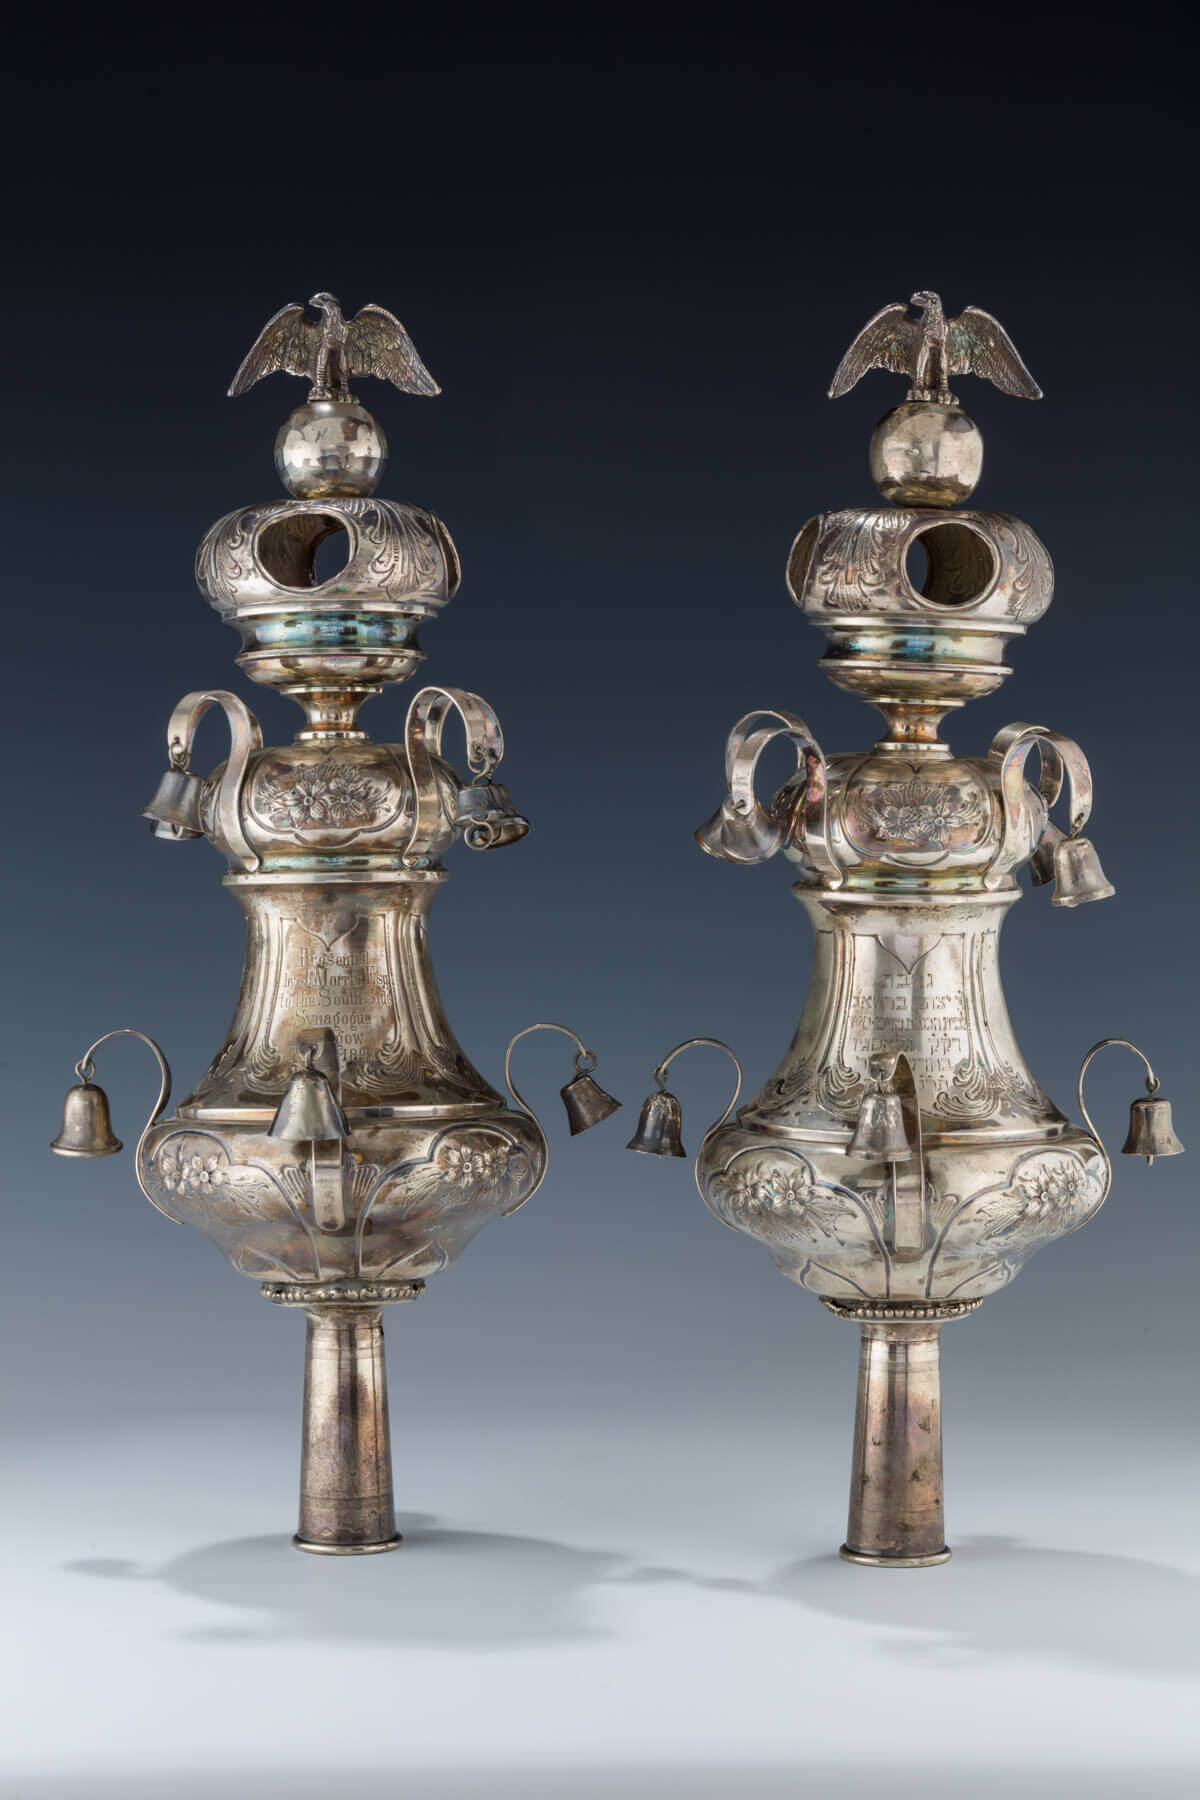 056. A PAIR OF LARGE SILVER TORAH FINIALS